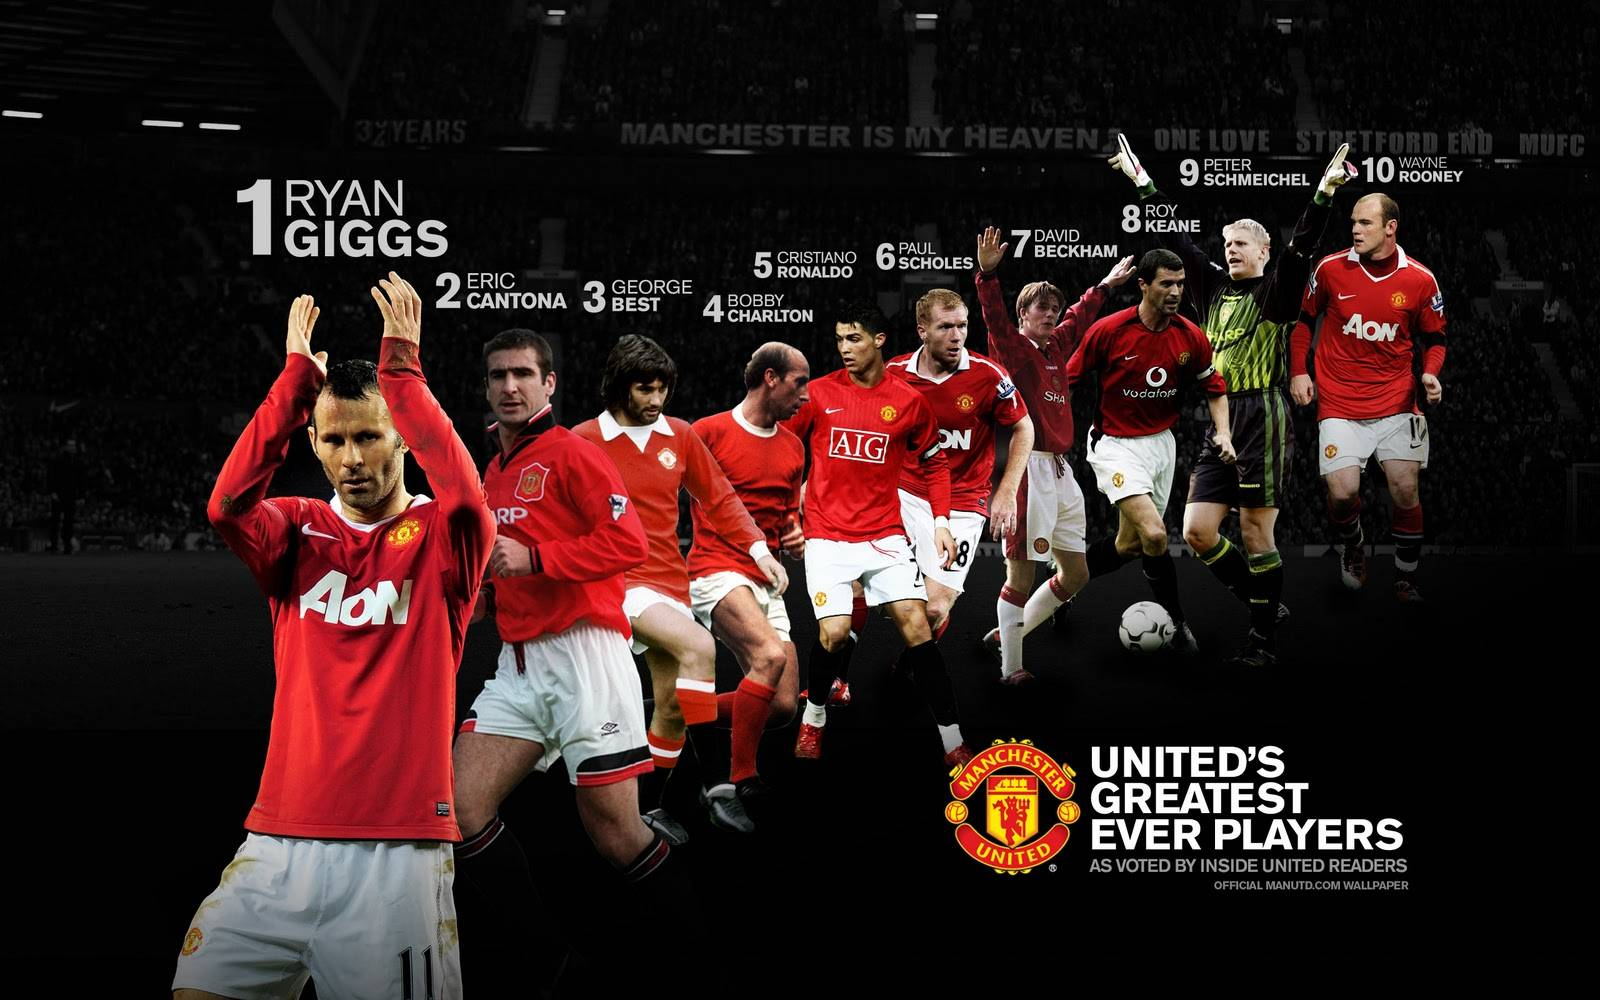 50 Manchester United Players Wallpapers   Download at WallpaperBro 1600x1000